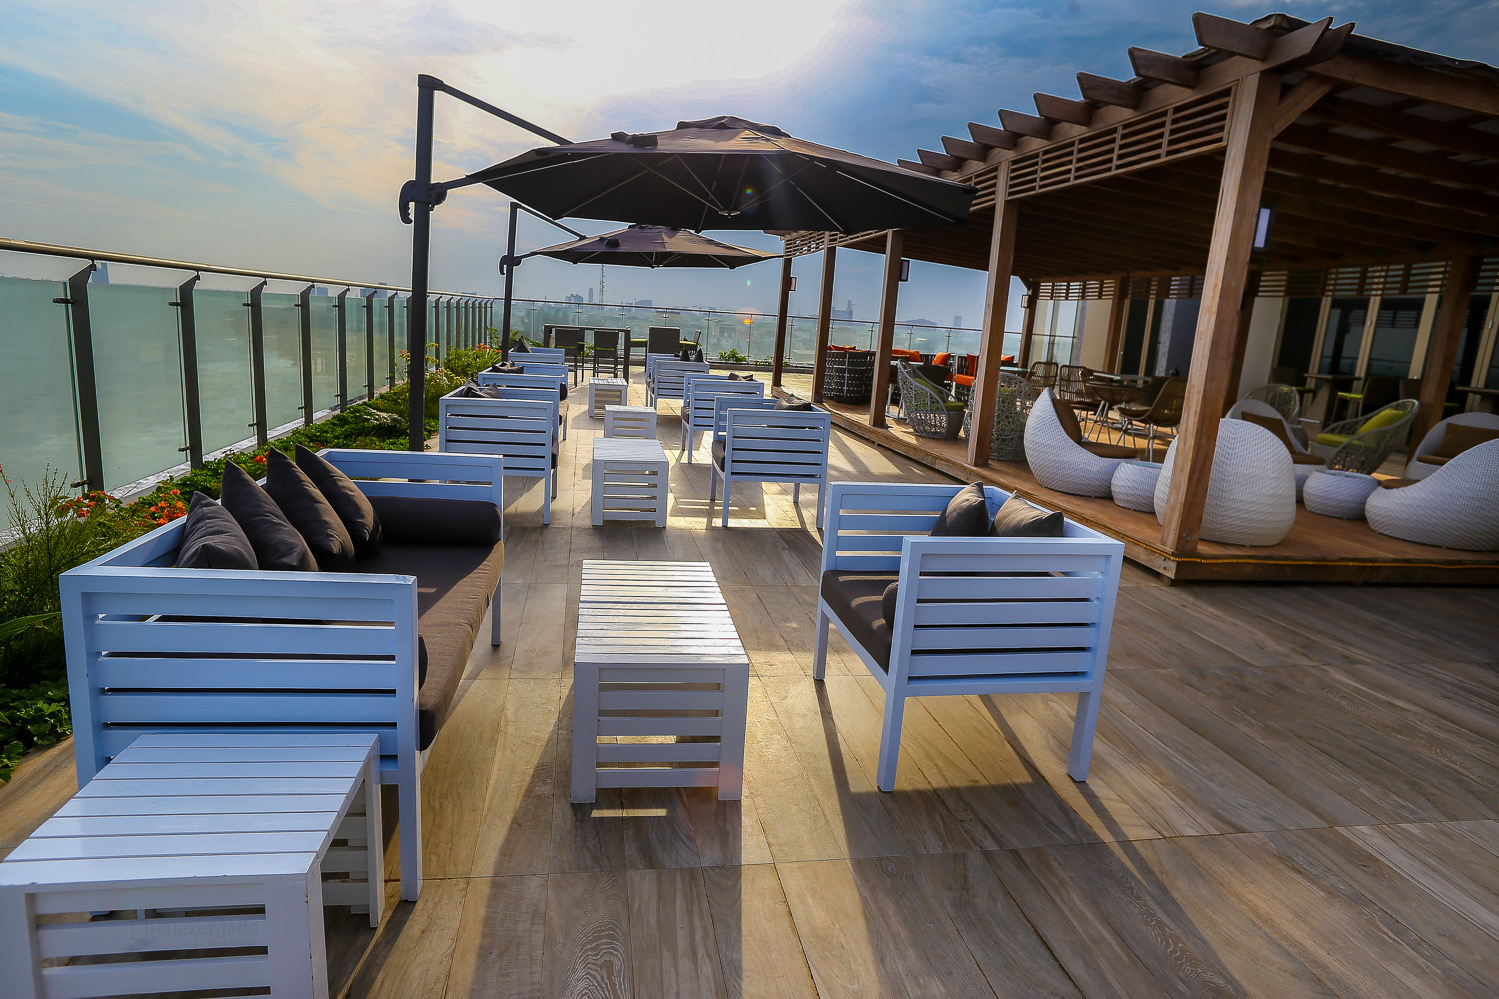 The View Rooftop Lounge, Twinwaters, Lekki Lagos NIGERIA